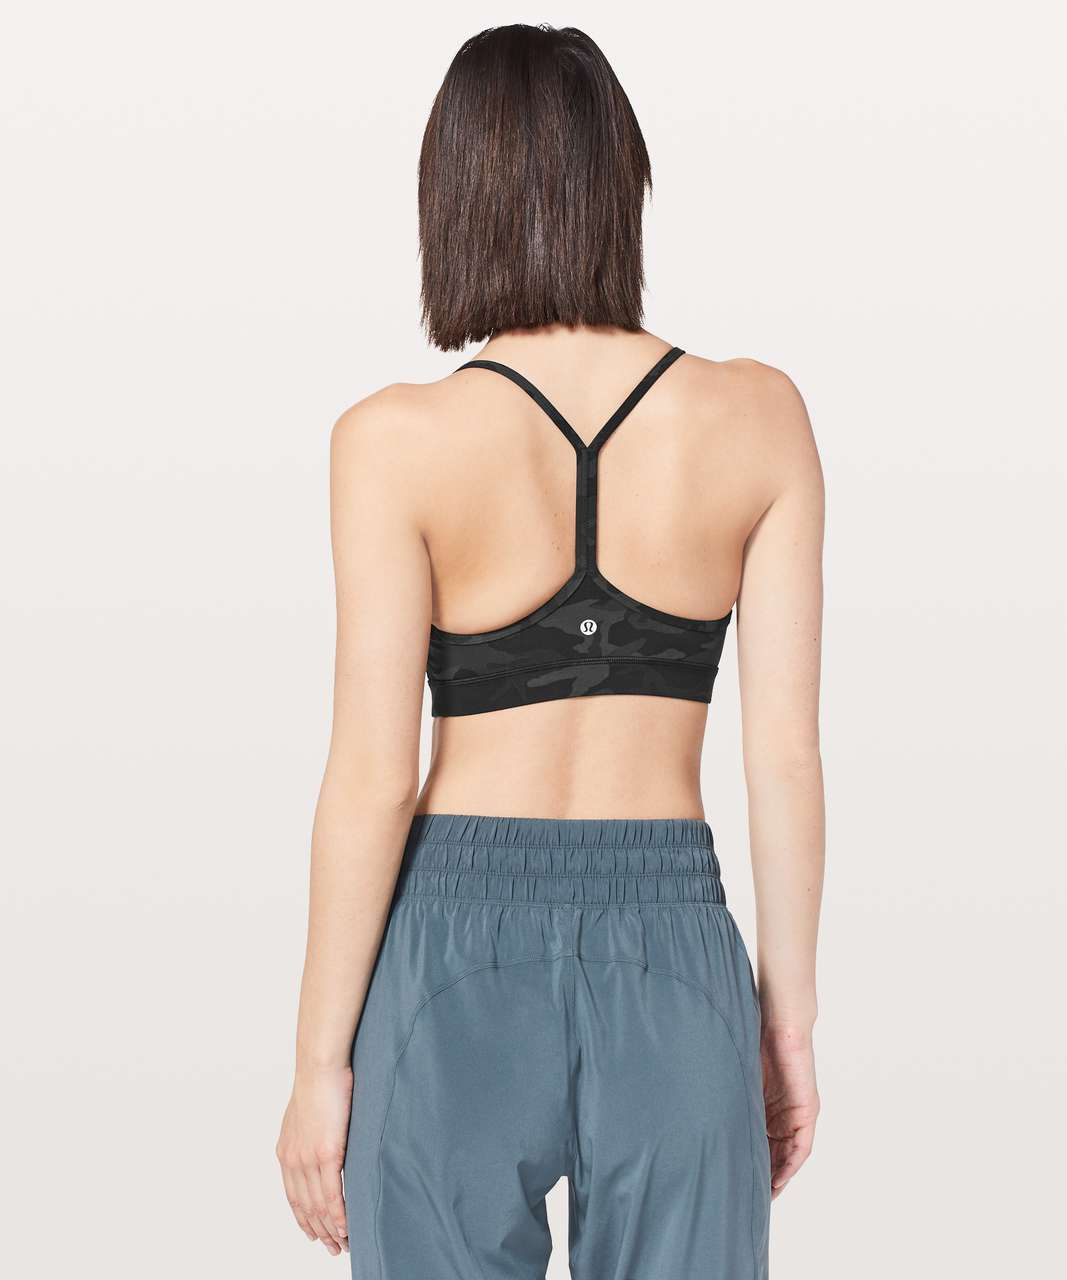 Lululemon Flow Y Bra *Nulu - Incognito Camo Multi Grey (First Release)